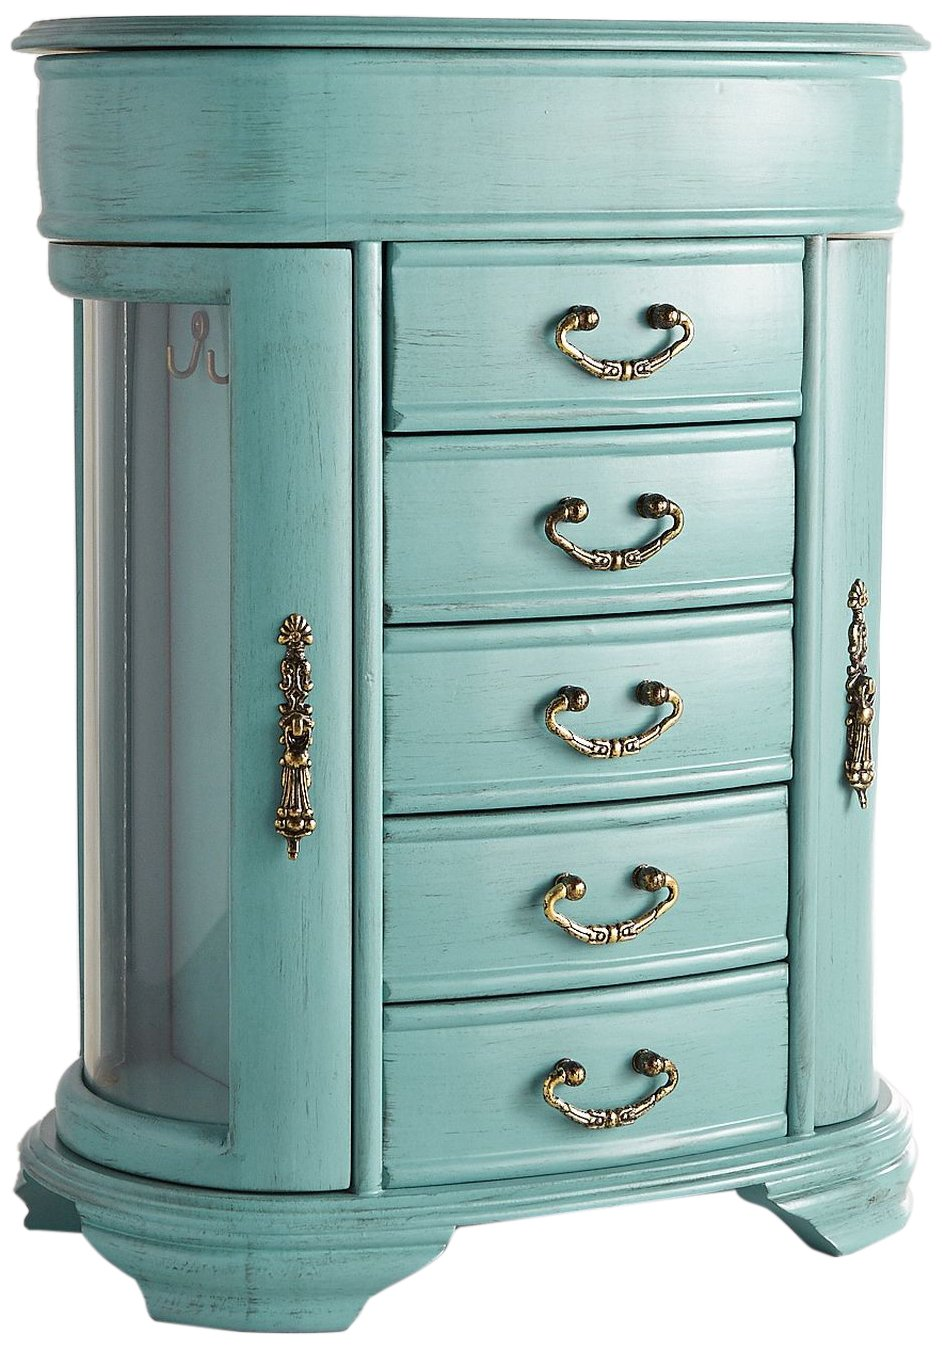 Hives & Honey Daphne Oval Glass Turquoise Jewelry Chest Jewelry Organizer Box Case Mirrored Storage by Hives and Honey